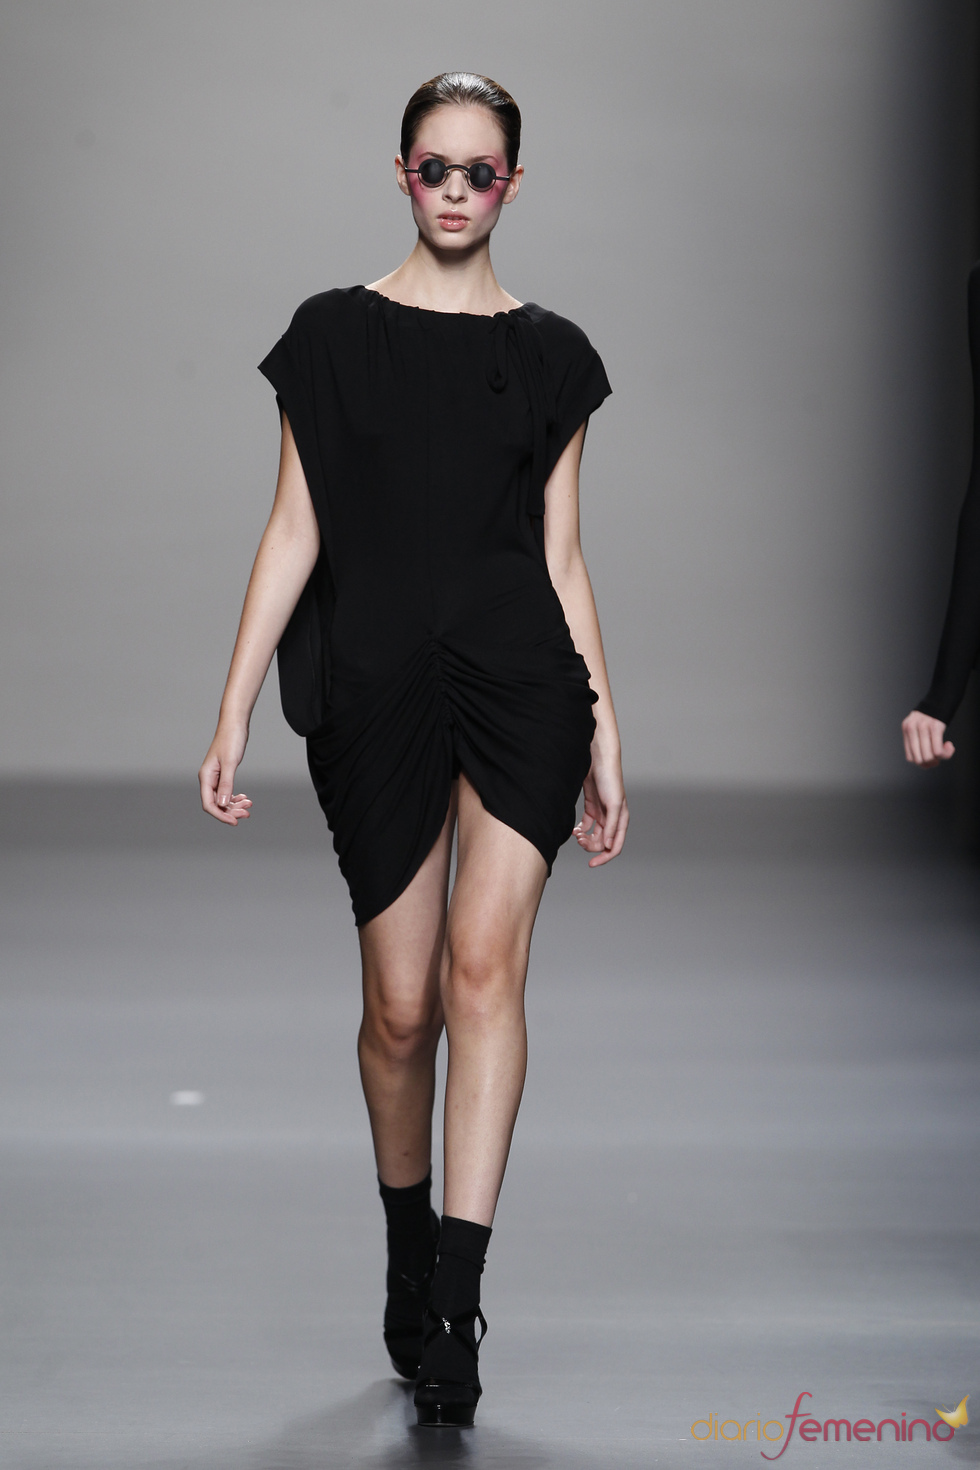 Little black dress con apertura frontal de Lydia Delgado en Cibeles 2011